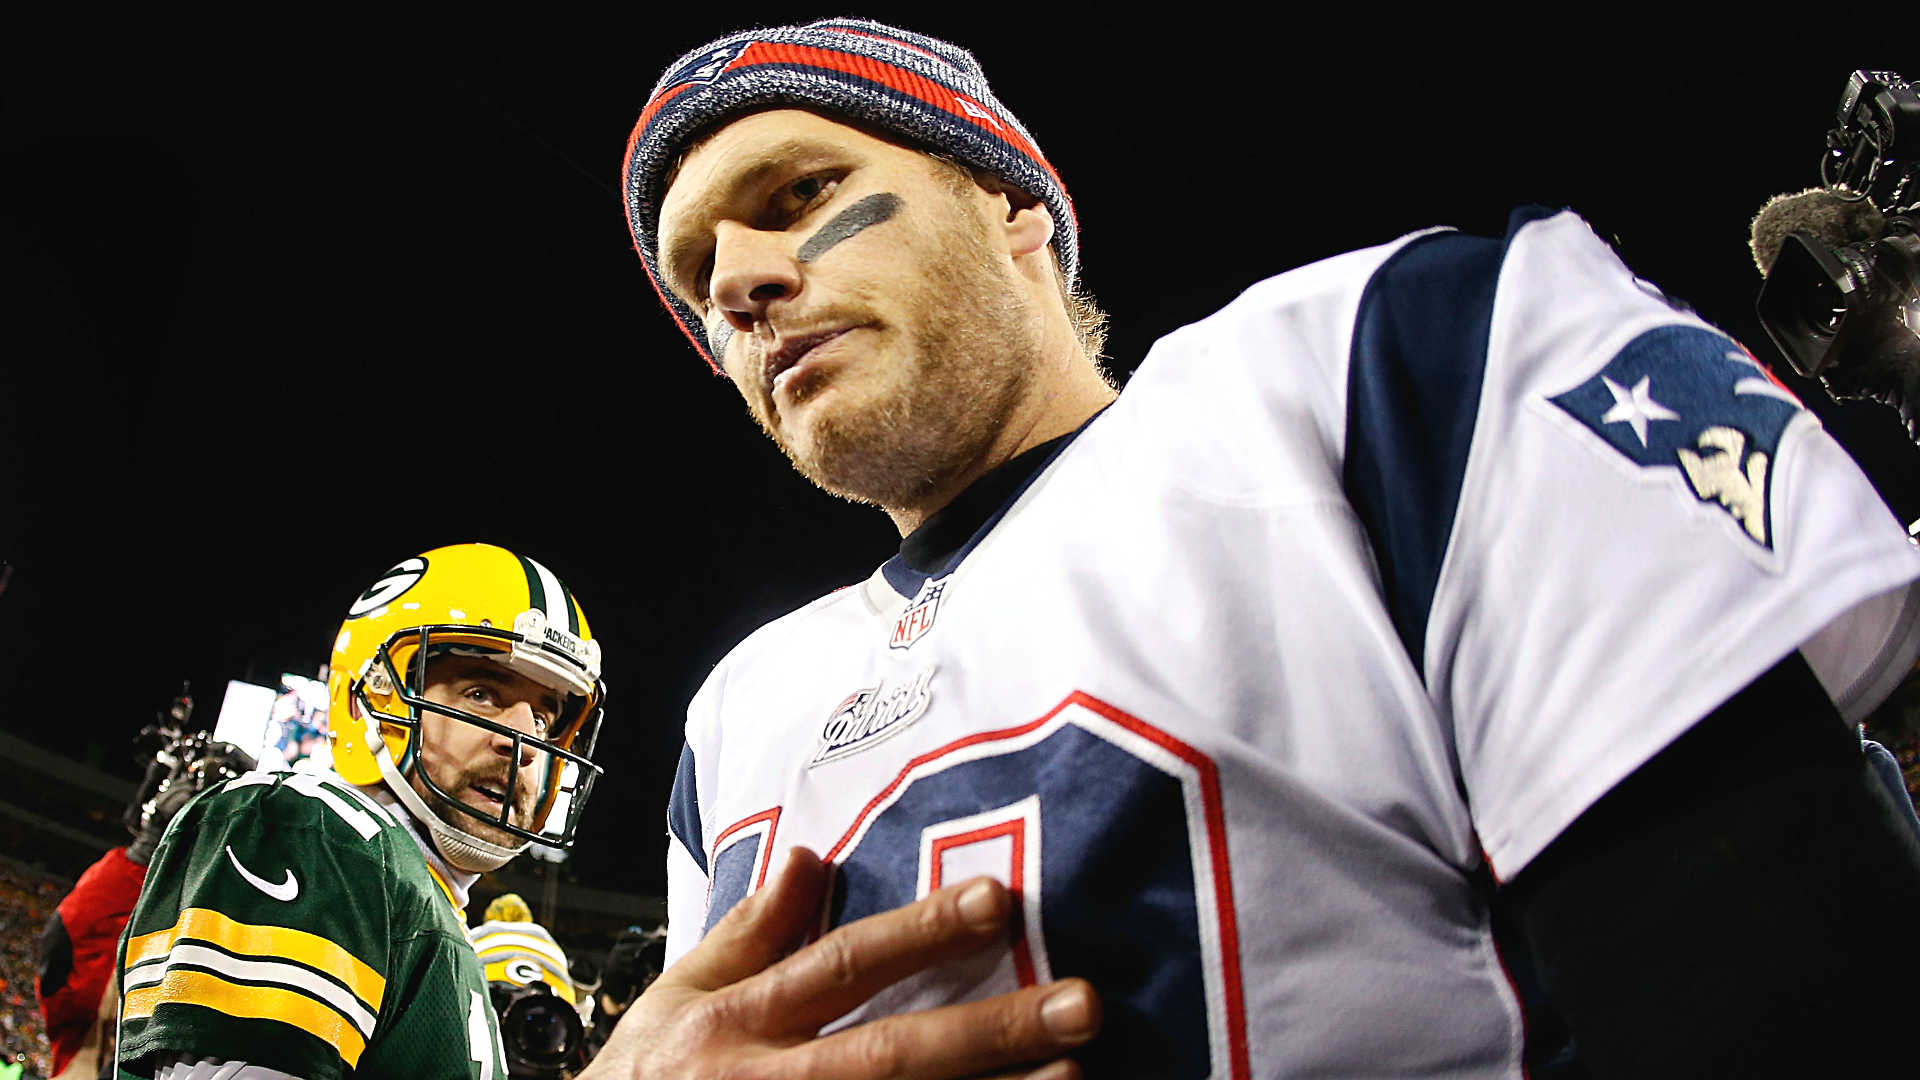 AaronRodgers-TomBrady-101315-USNews-Getty-FTR